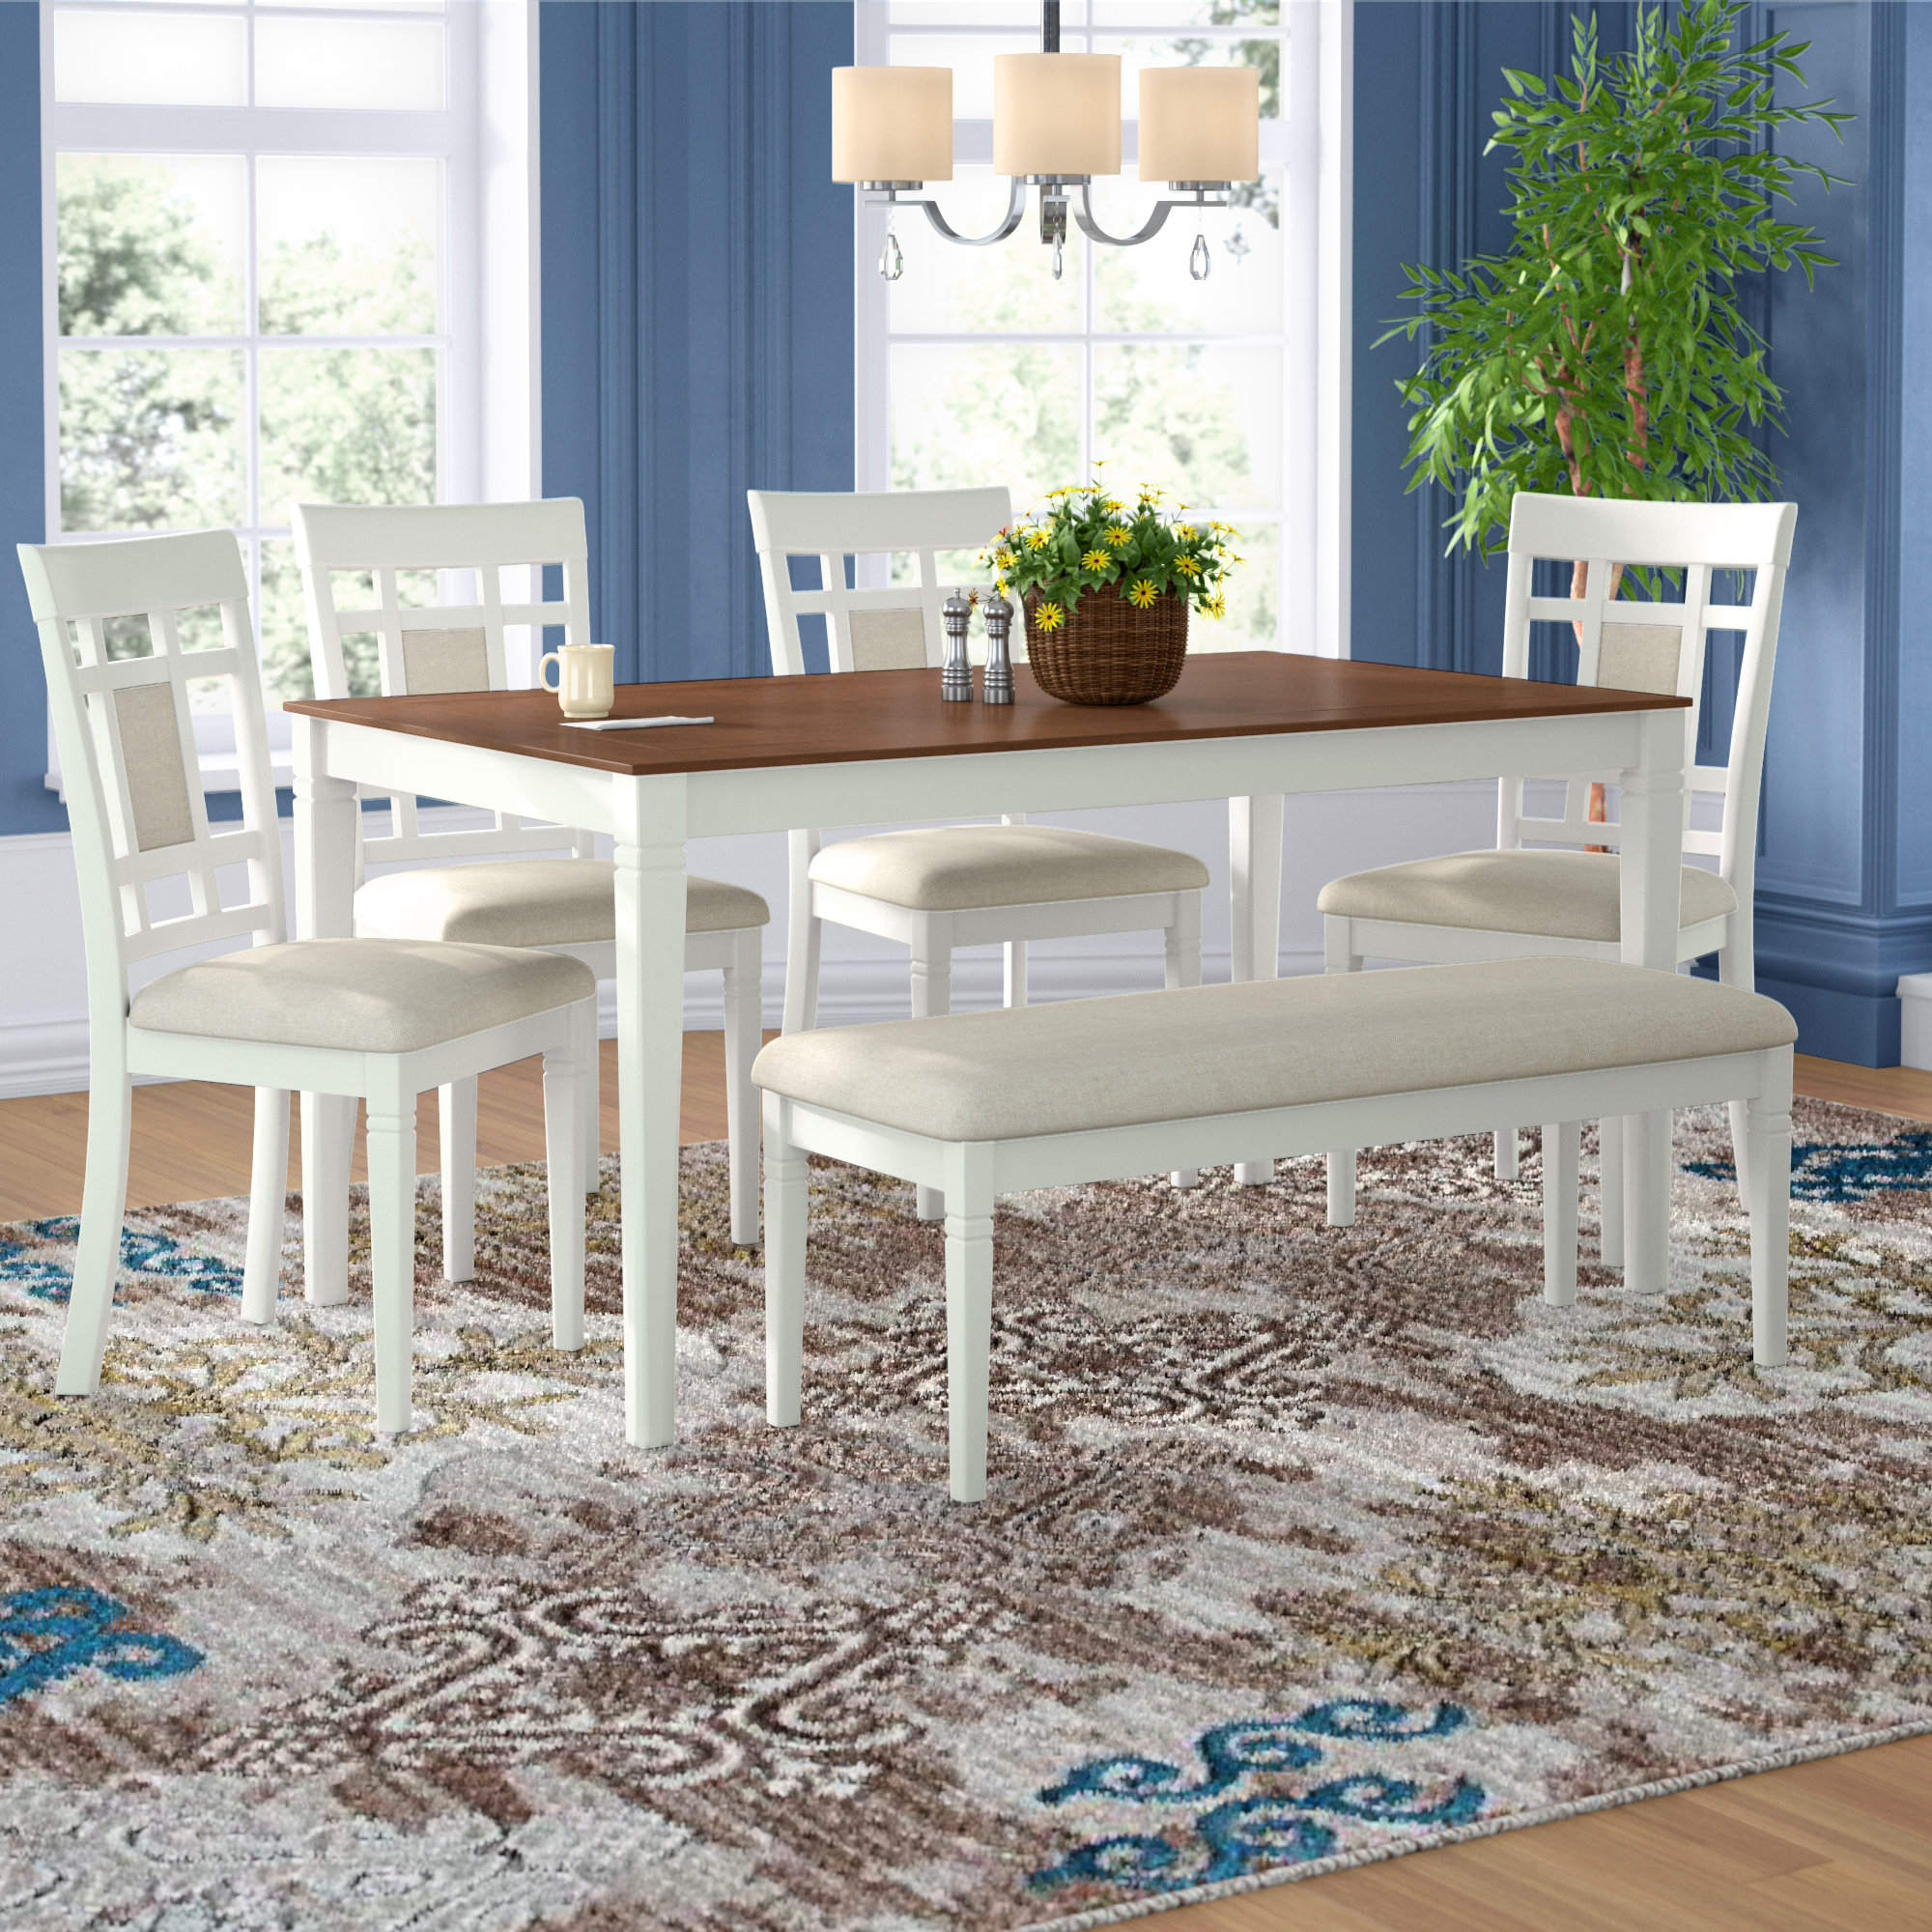 Details About Alcott Hill Hillside Avenue 6 Piece Breakfast Nook Dining Set Regarding Most Up To Date Lightle 5 Piece Breakfast Nook Dining Sets (Image 4 of 20)